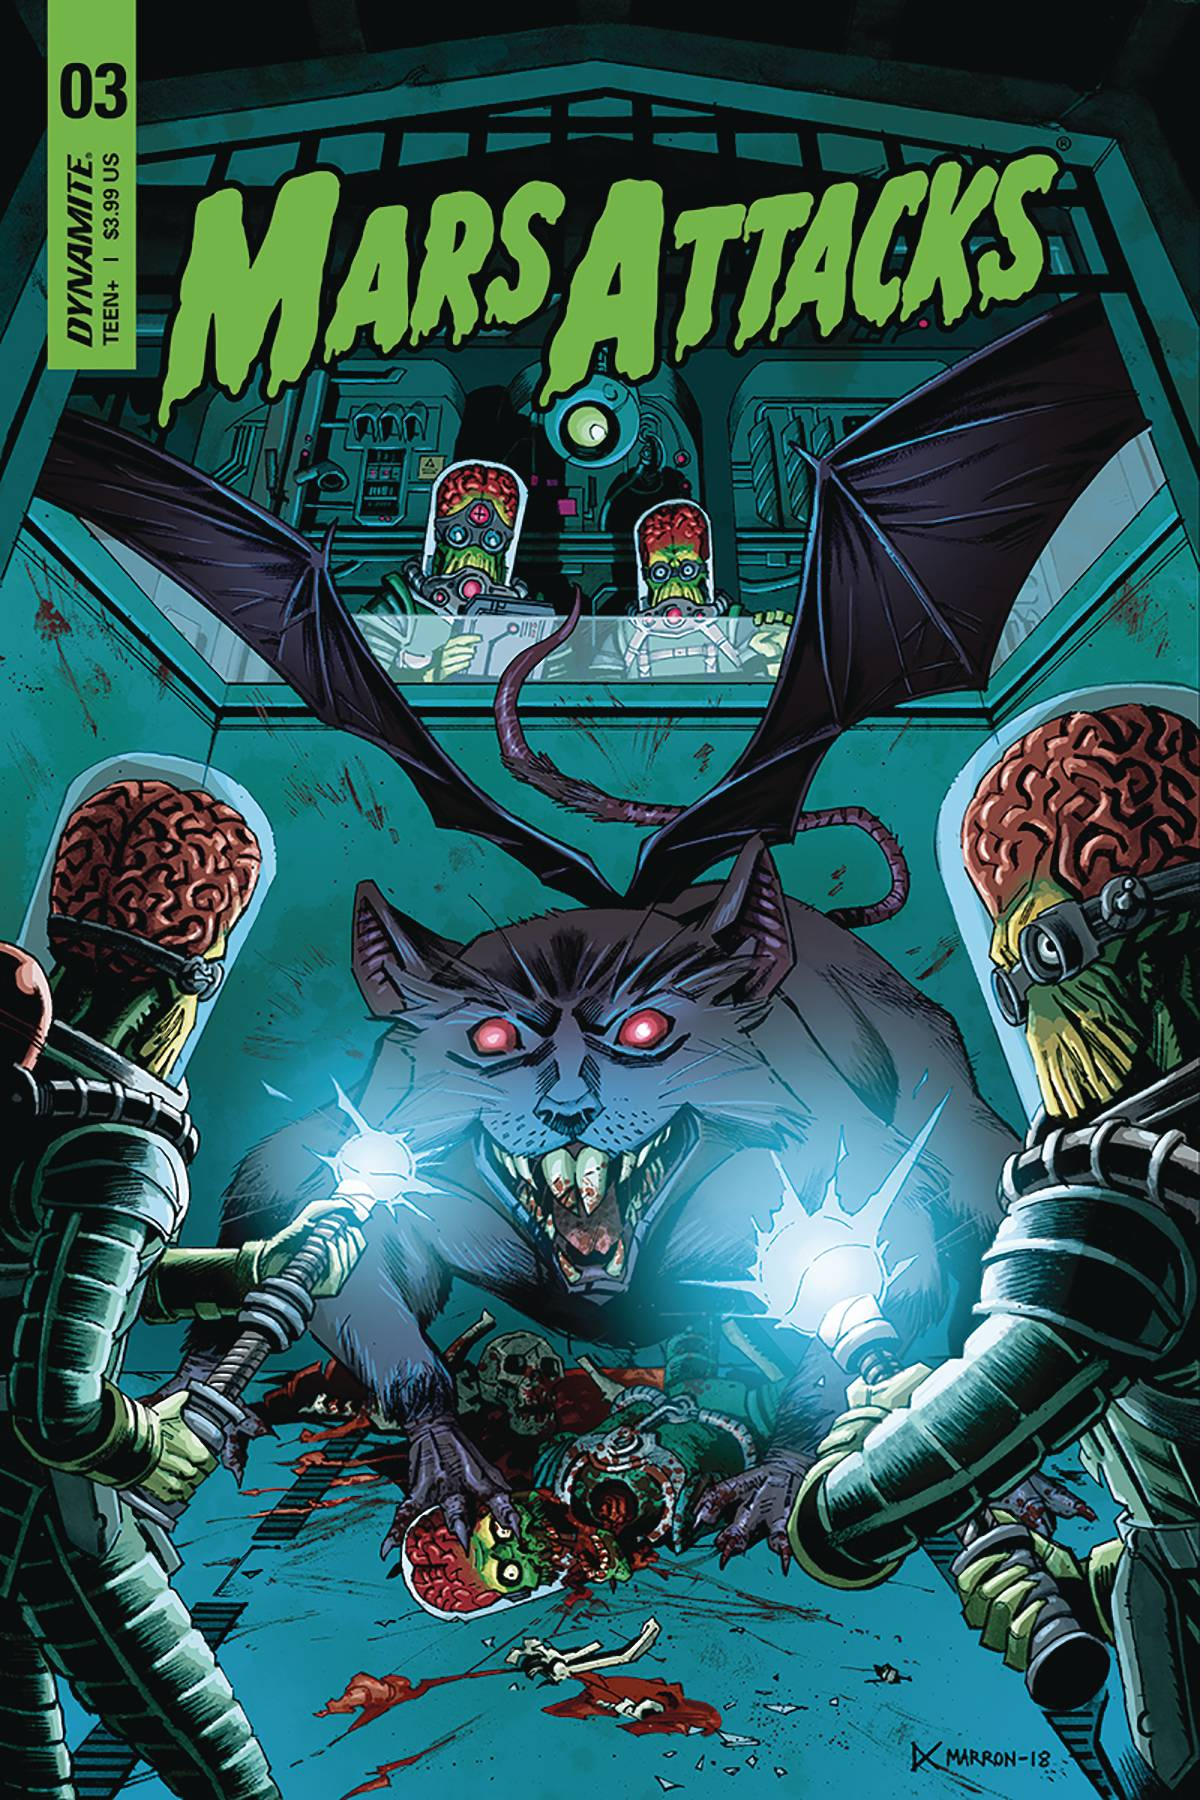 MARS ATTACKS 3 CVR C MARRON.jpg